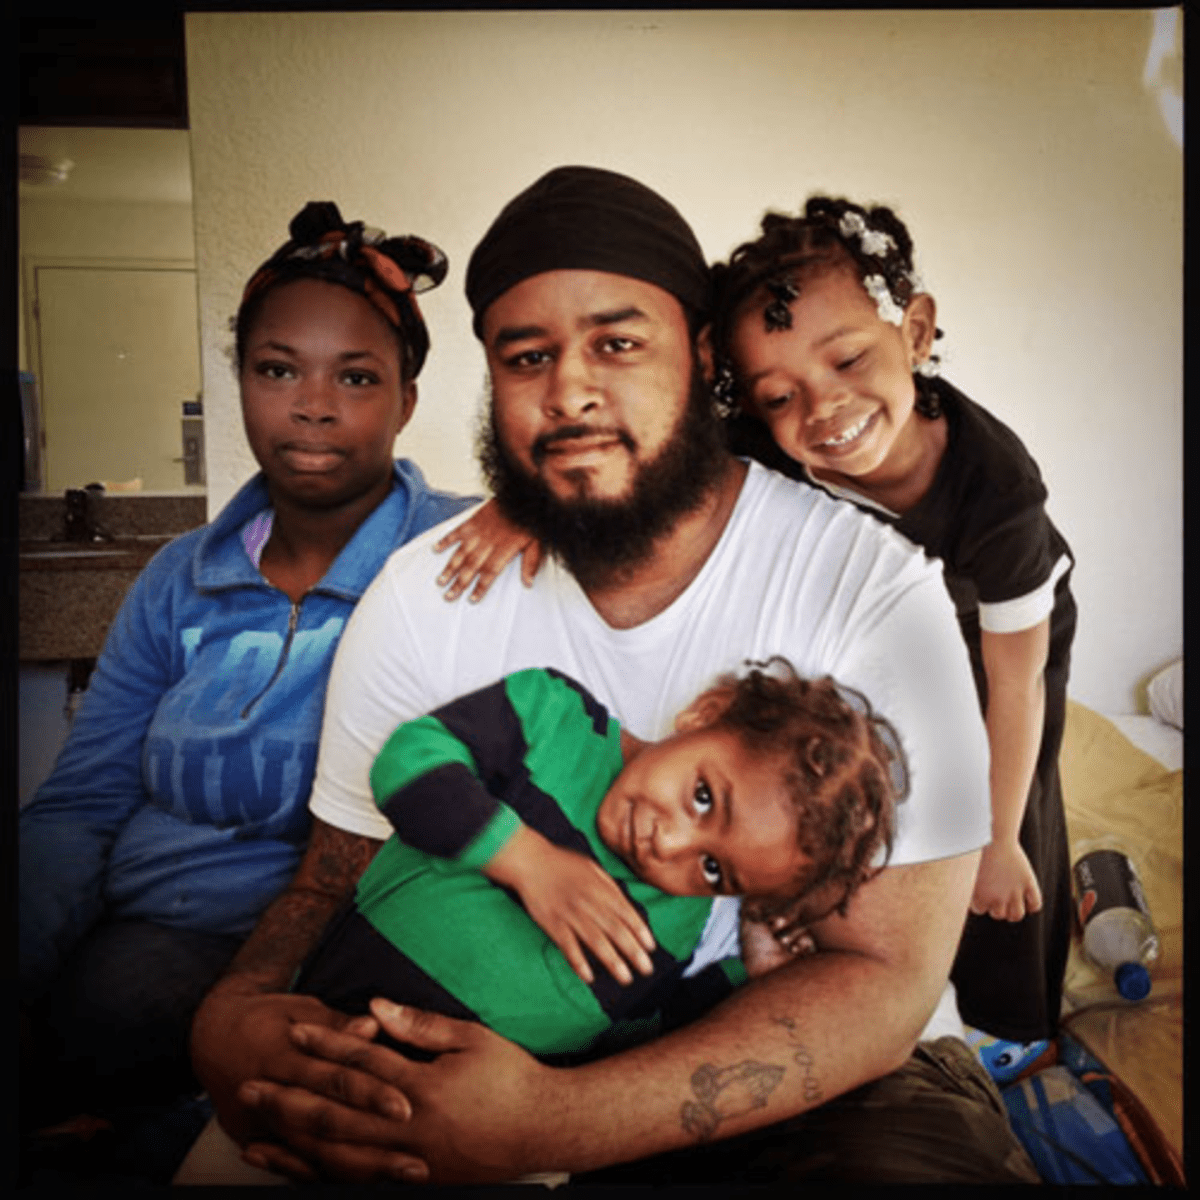 Home Is Where the Heart Is: Donnell Harris is still seeking permanent housing for his family.